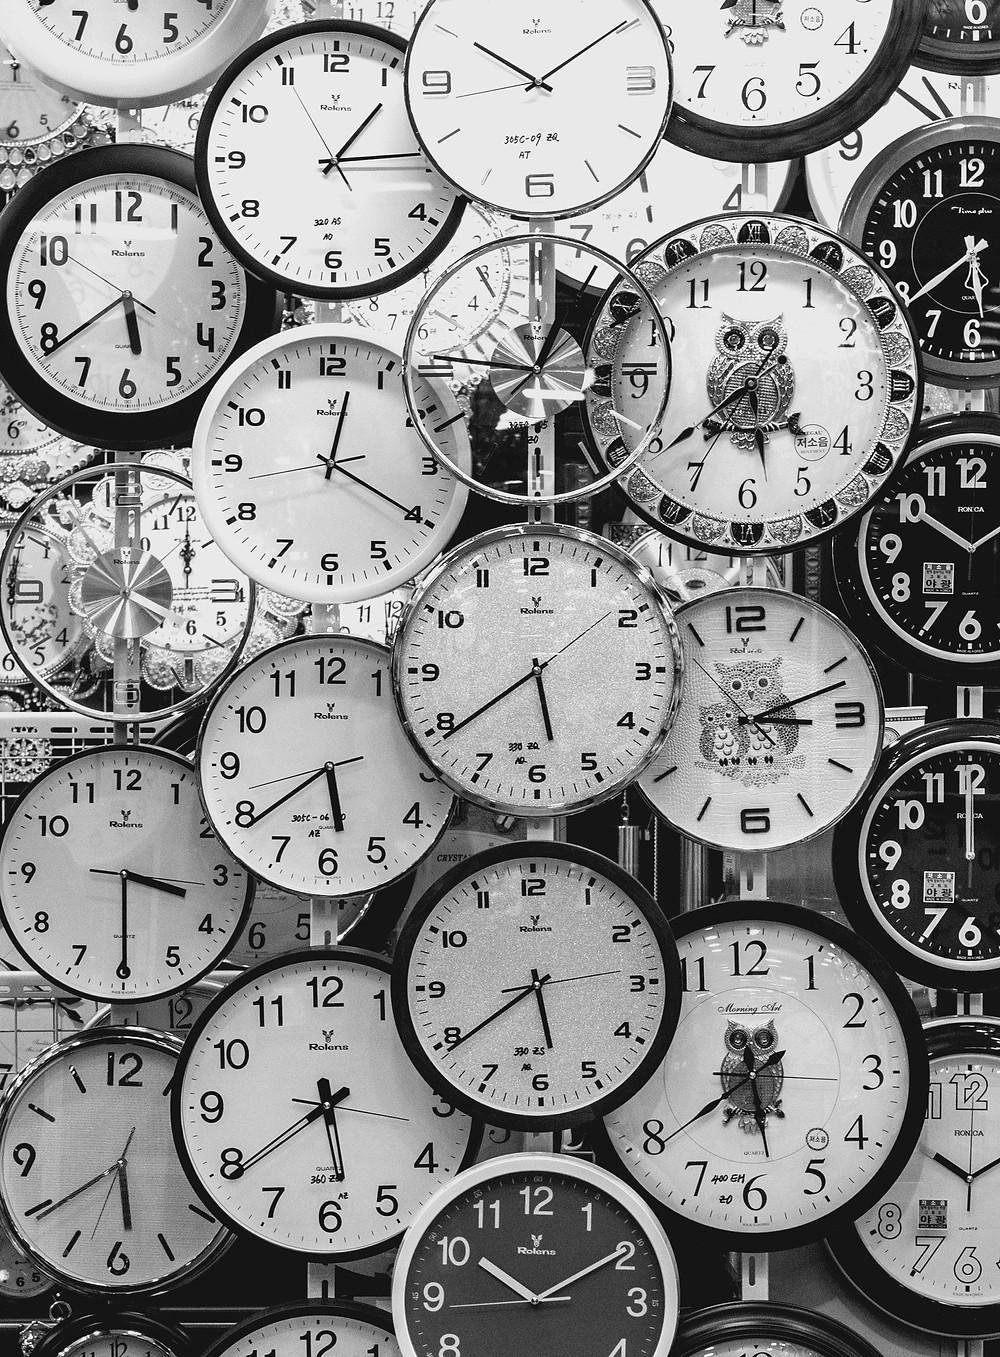 stopwatches, clocks, time